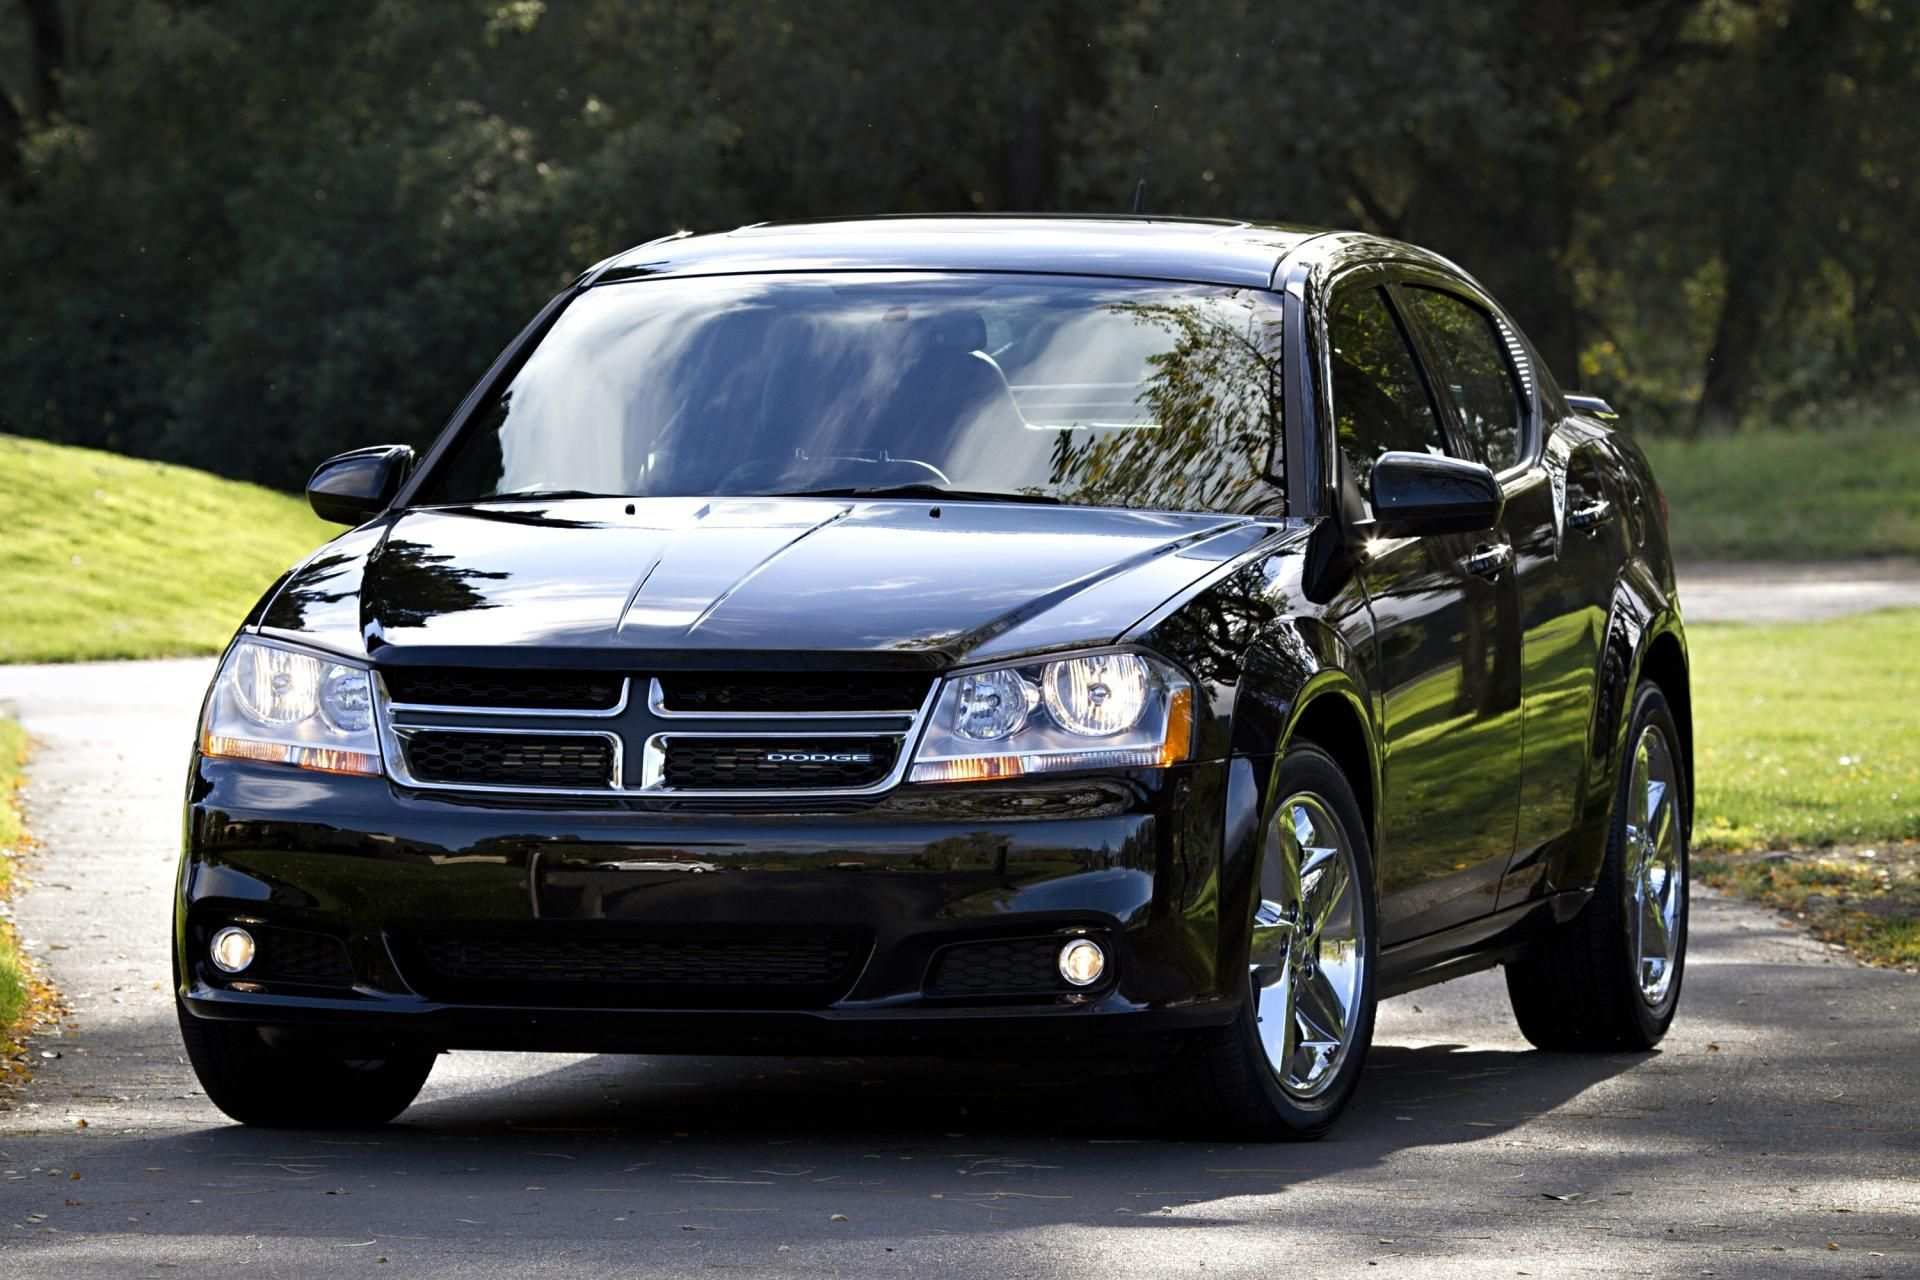 47 New Dodge Avenger 2020 Review And Release Date